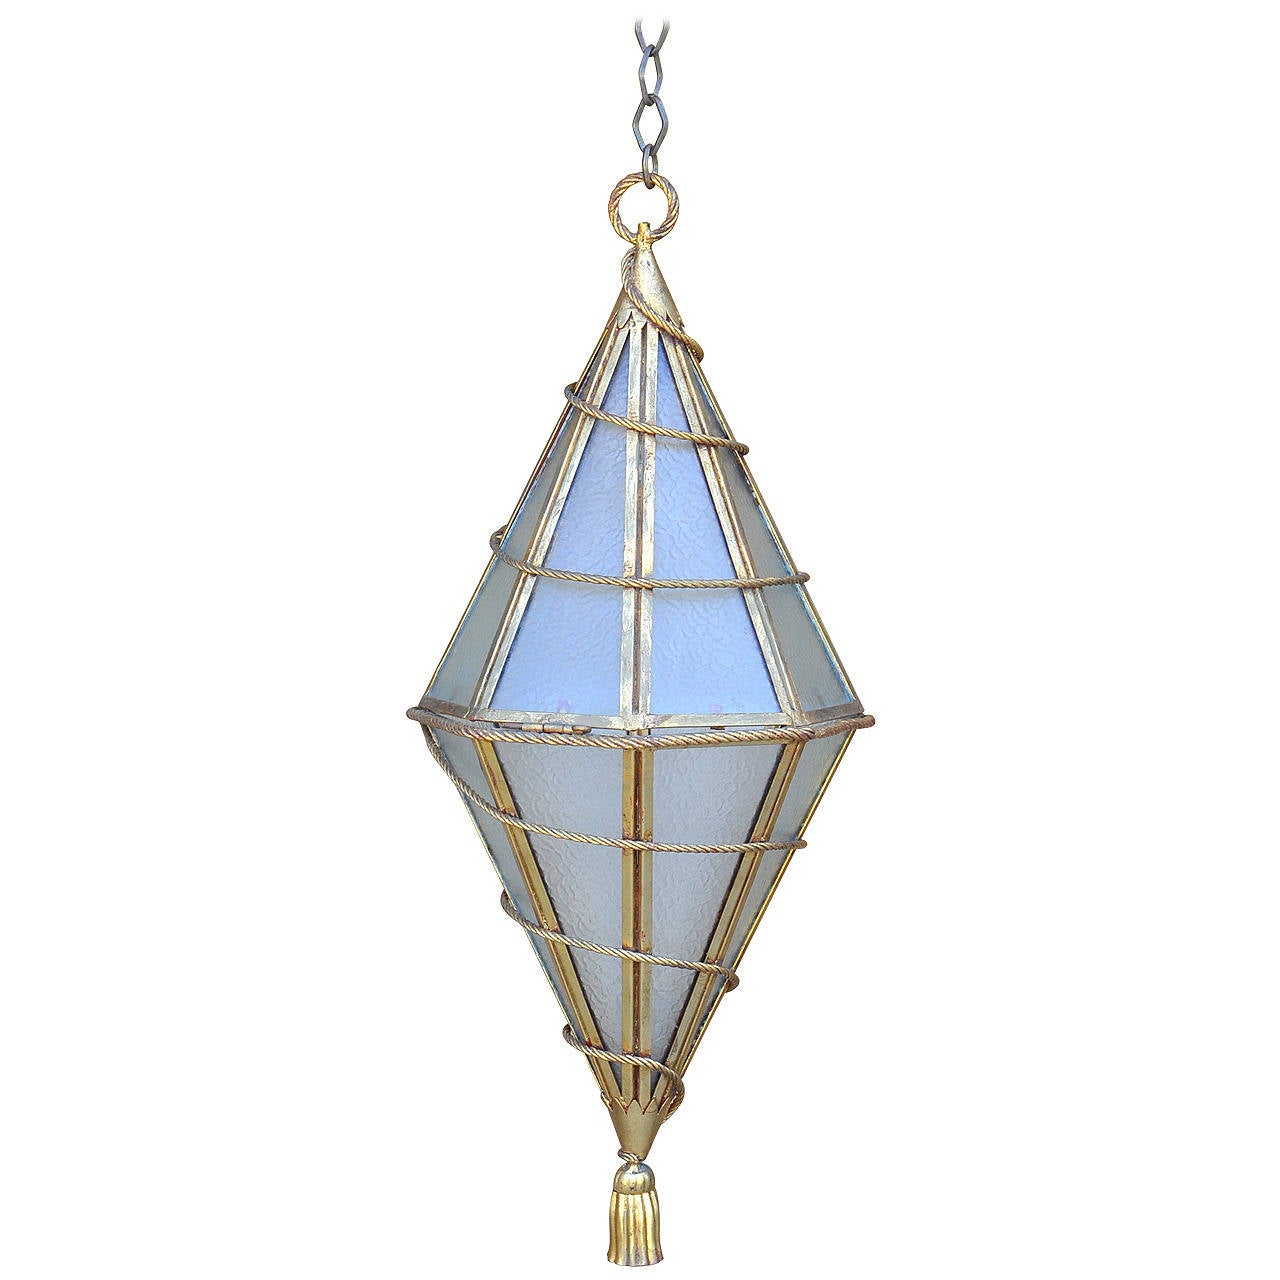 Large Italian Glass and Gilt Metal Geometric Hanging Lantern